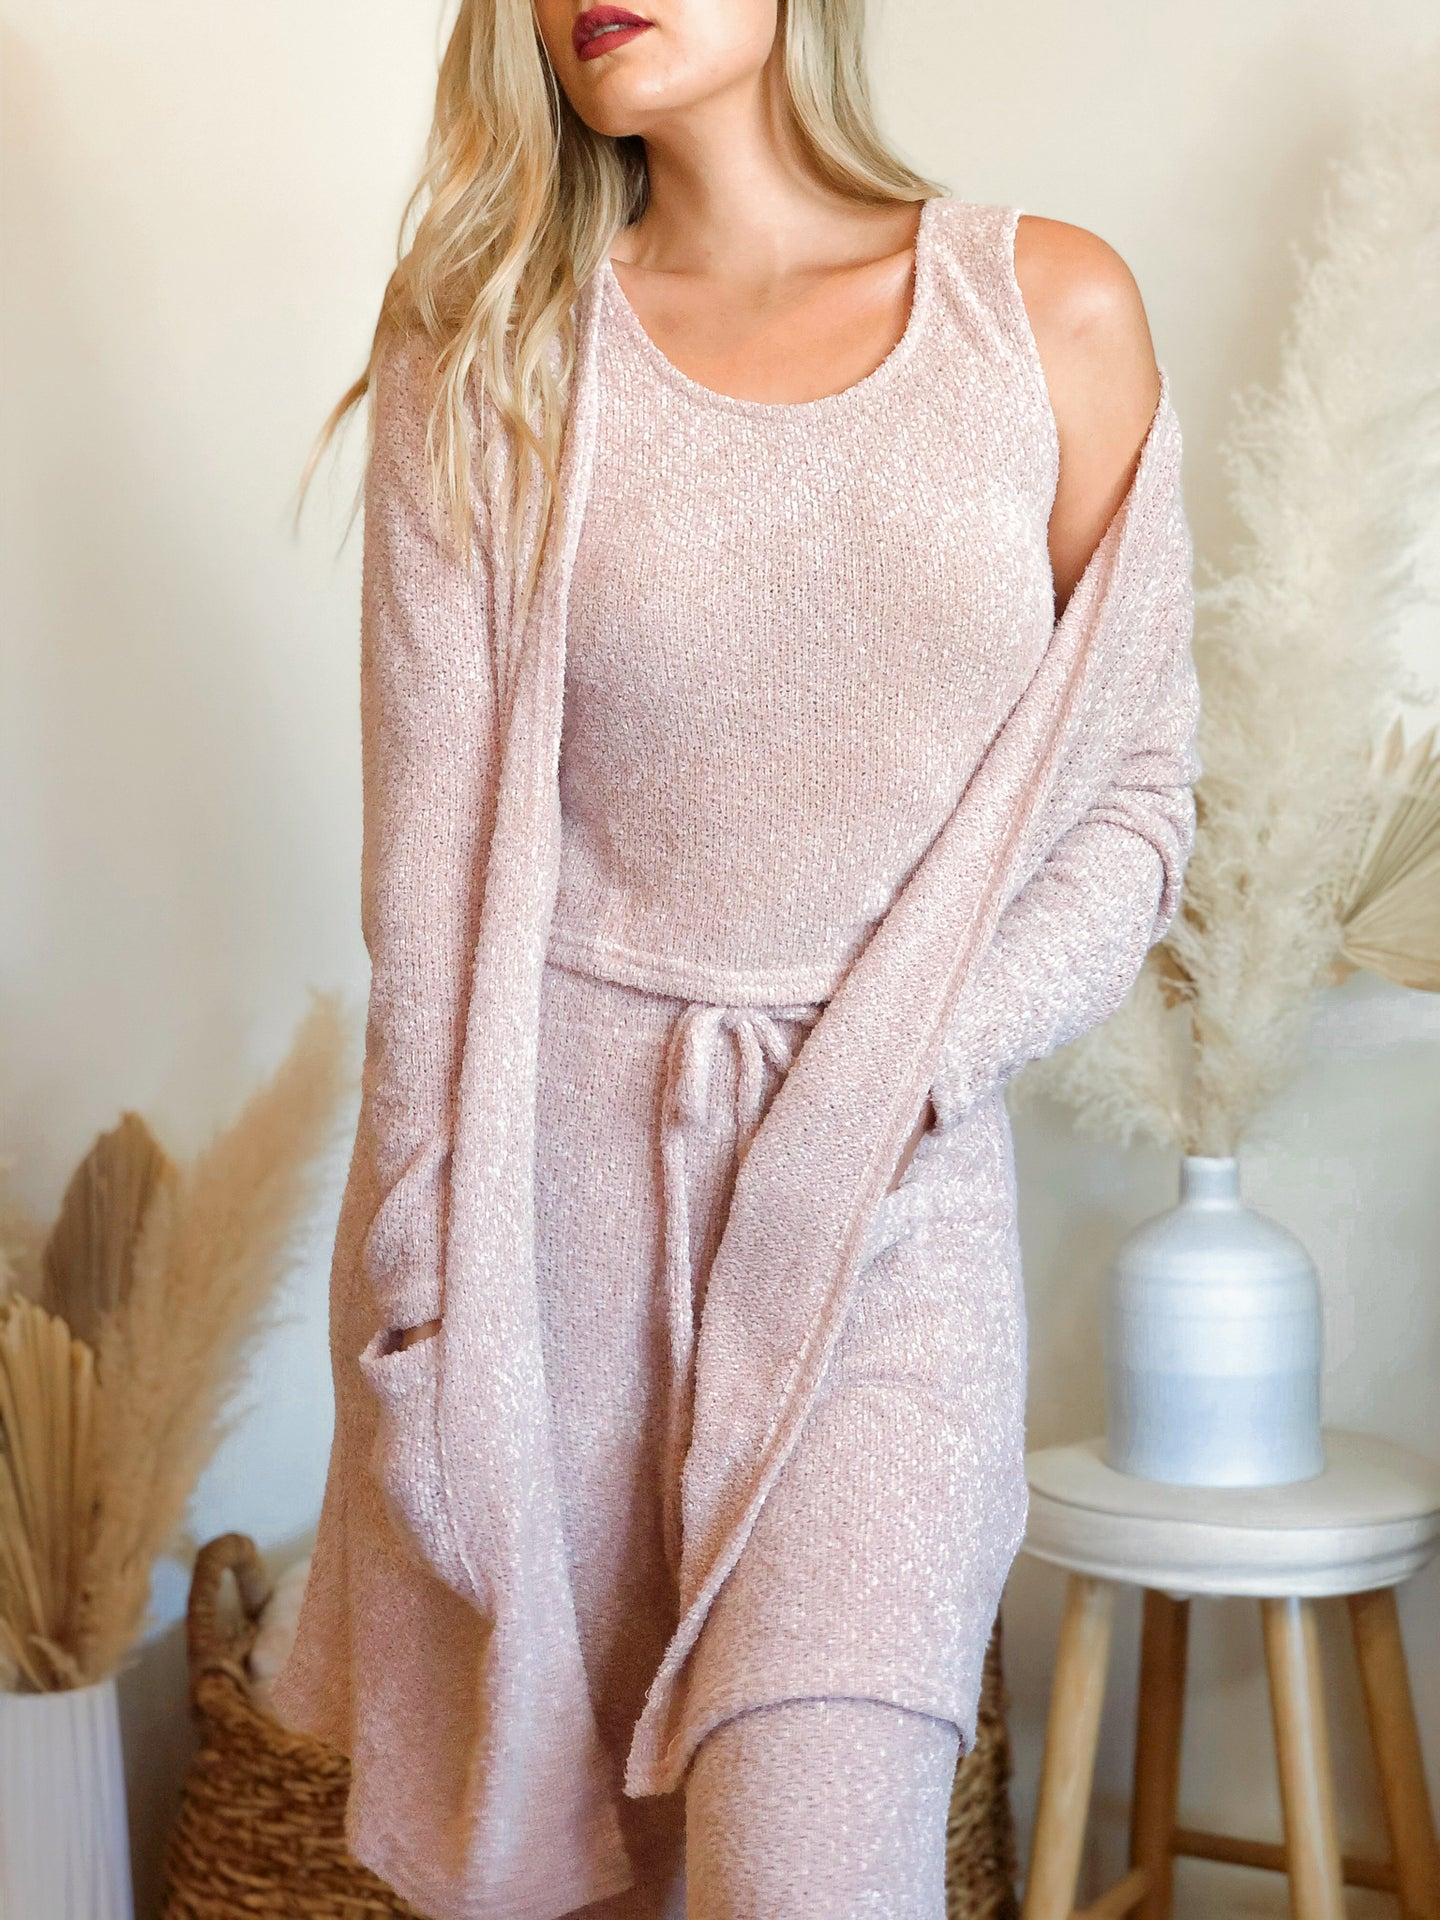 The Cozy Life 3 Piece Set - Finding July